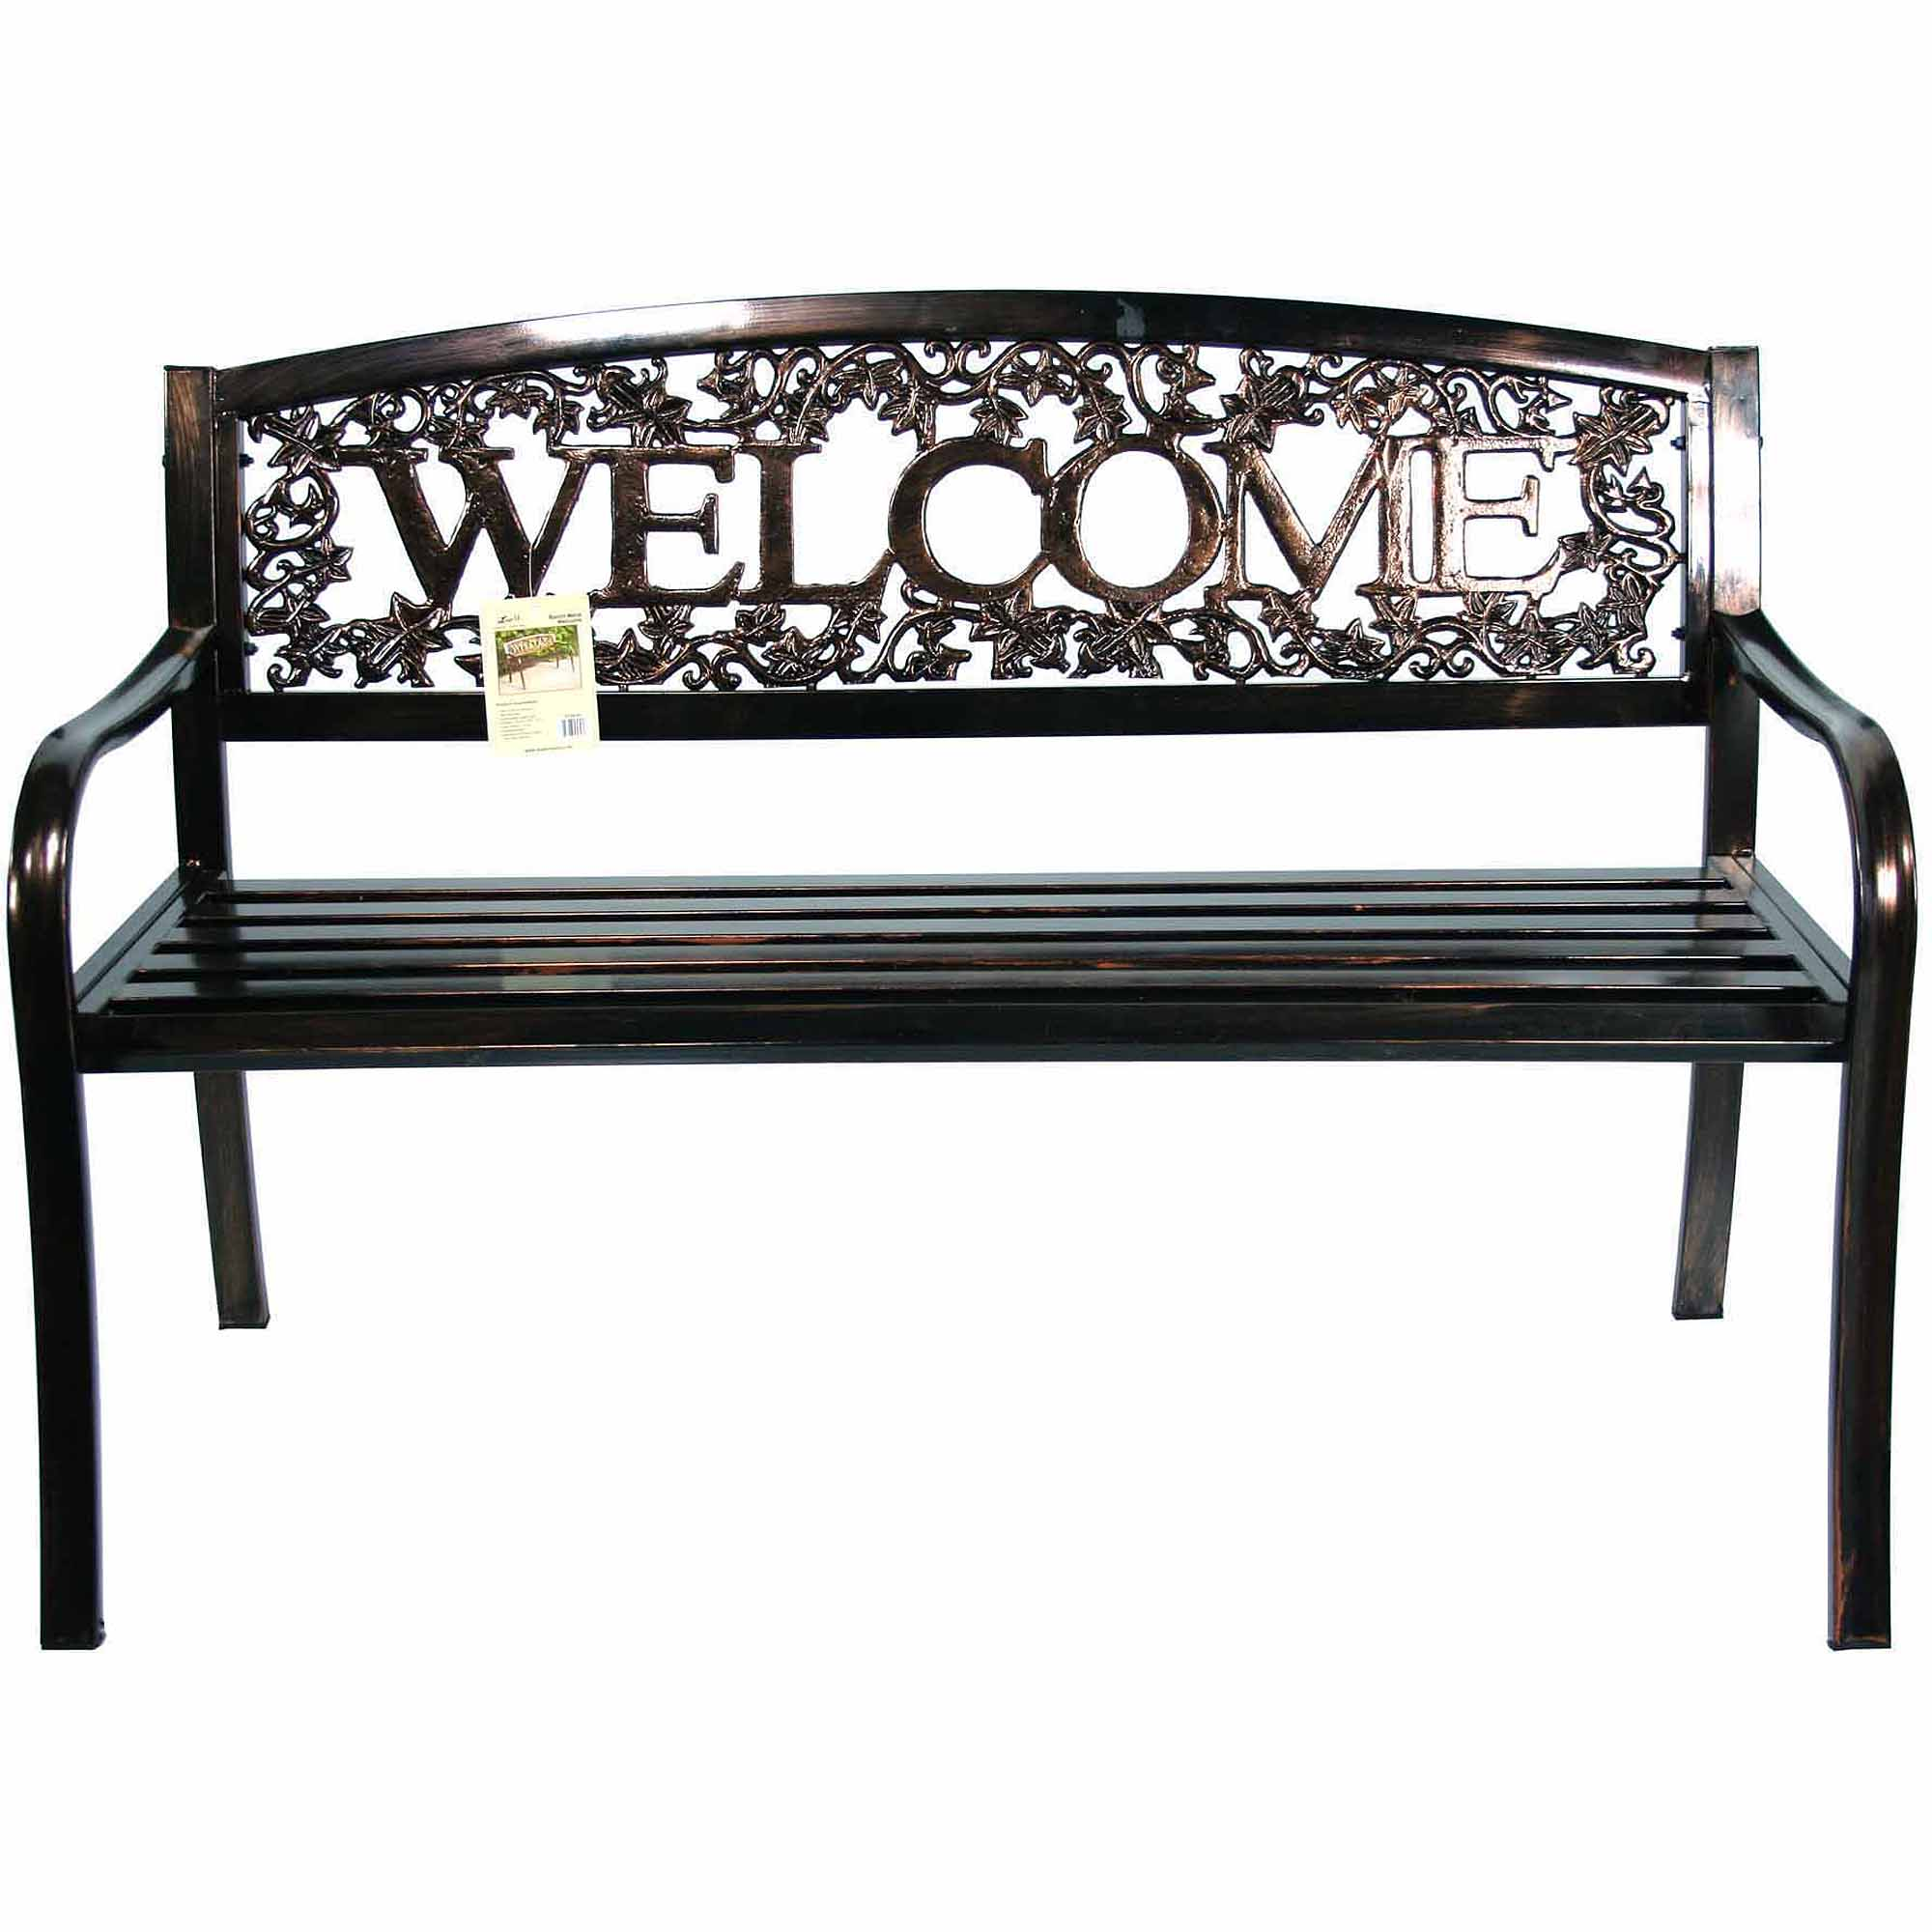 United General Supply Co Metal Welcome Bench by United General Supply Co Inc